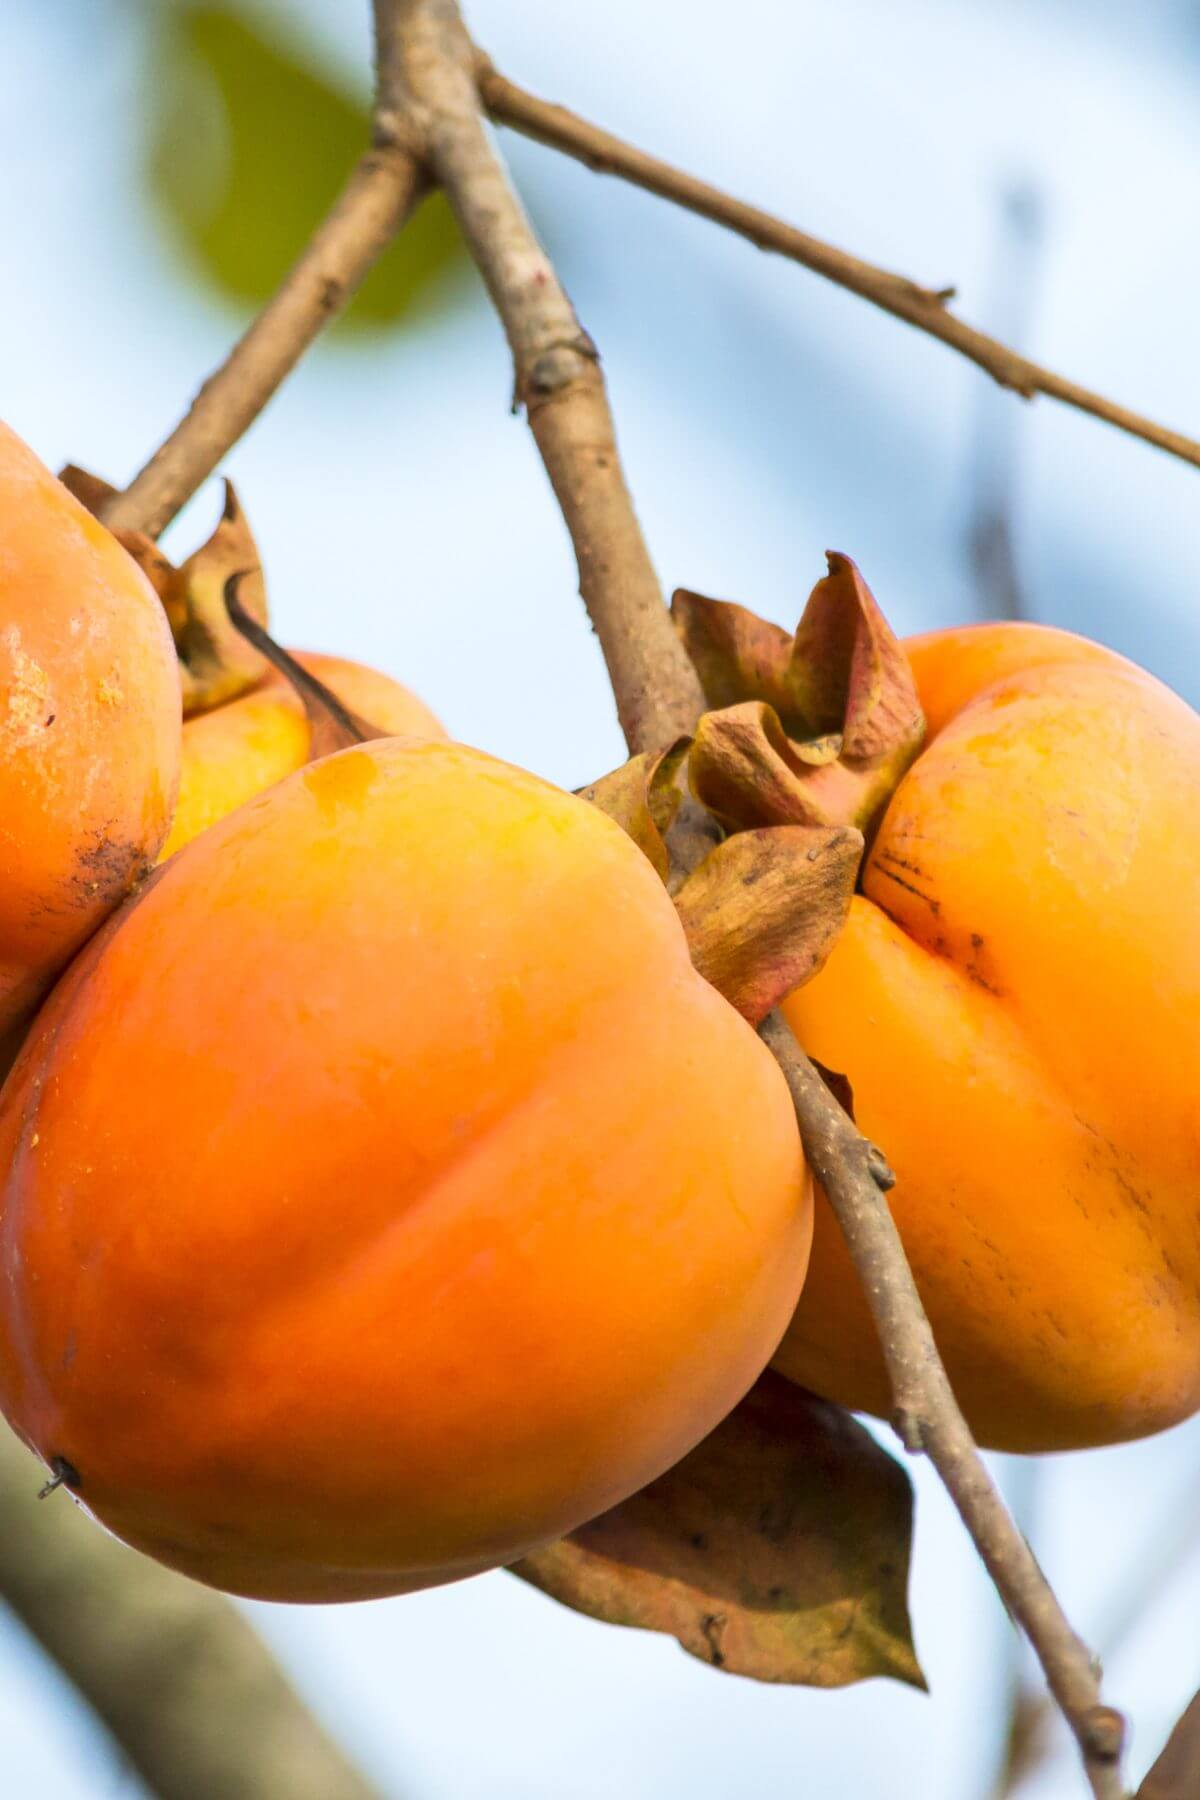 Persimmons on a tree branch.